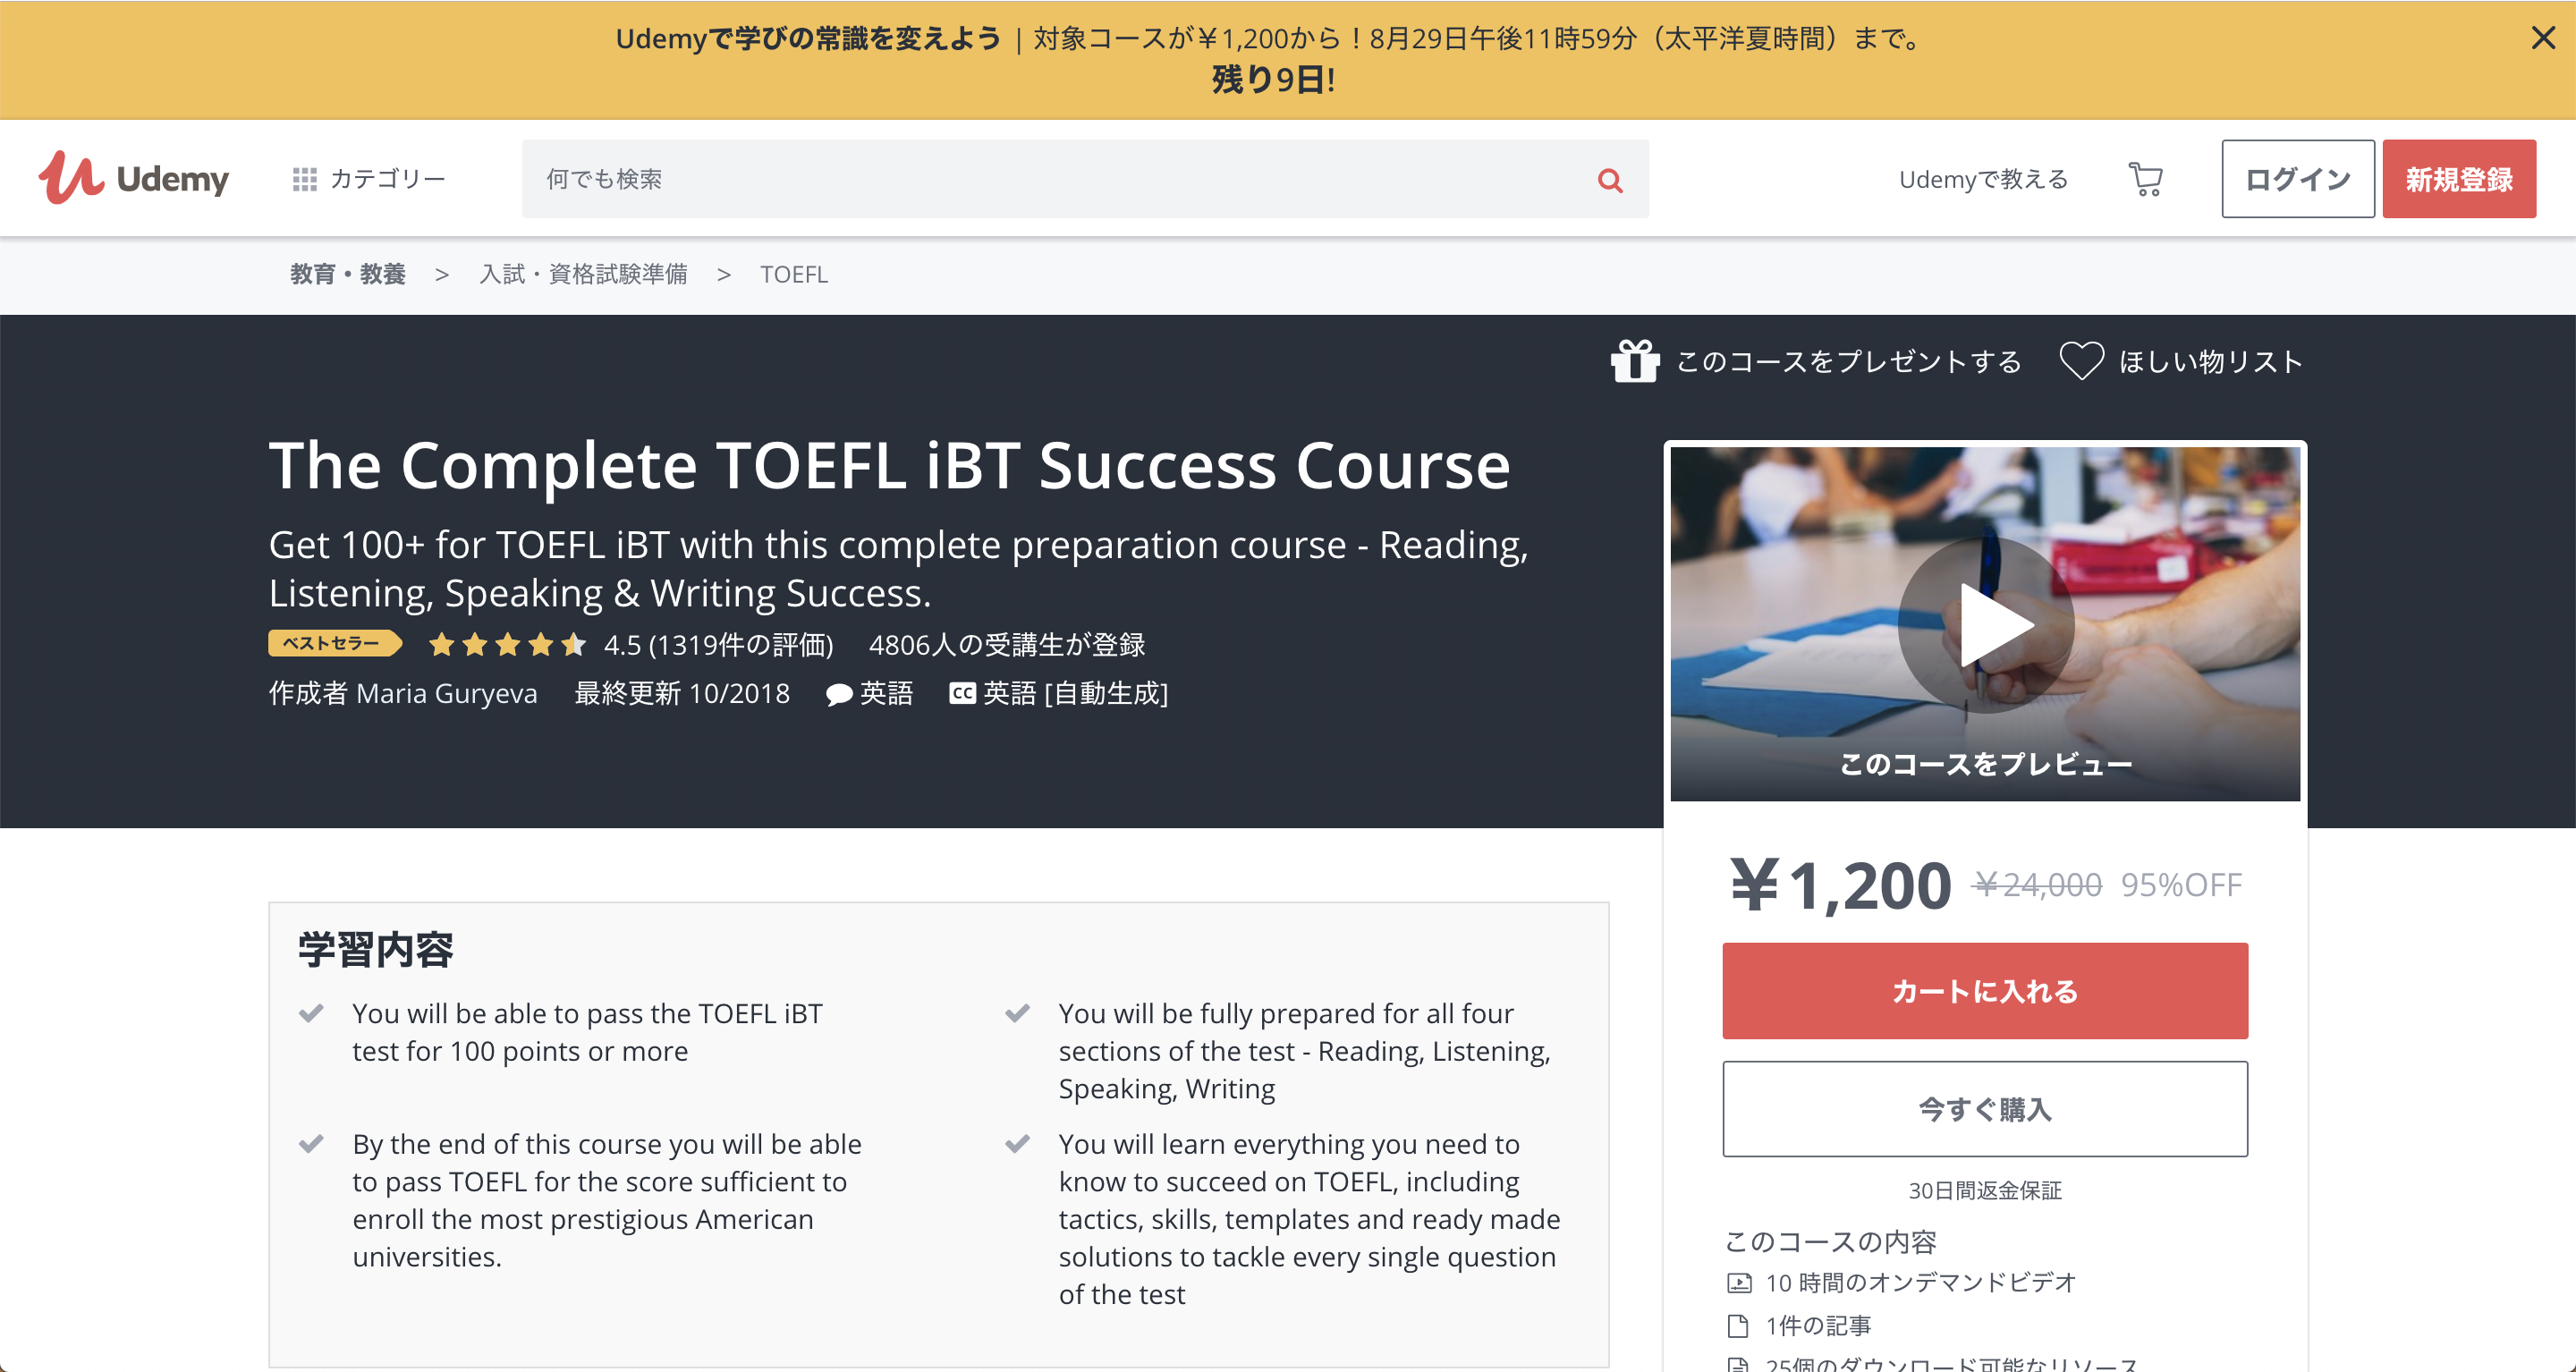 Udemy TOEFL Course